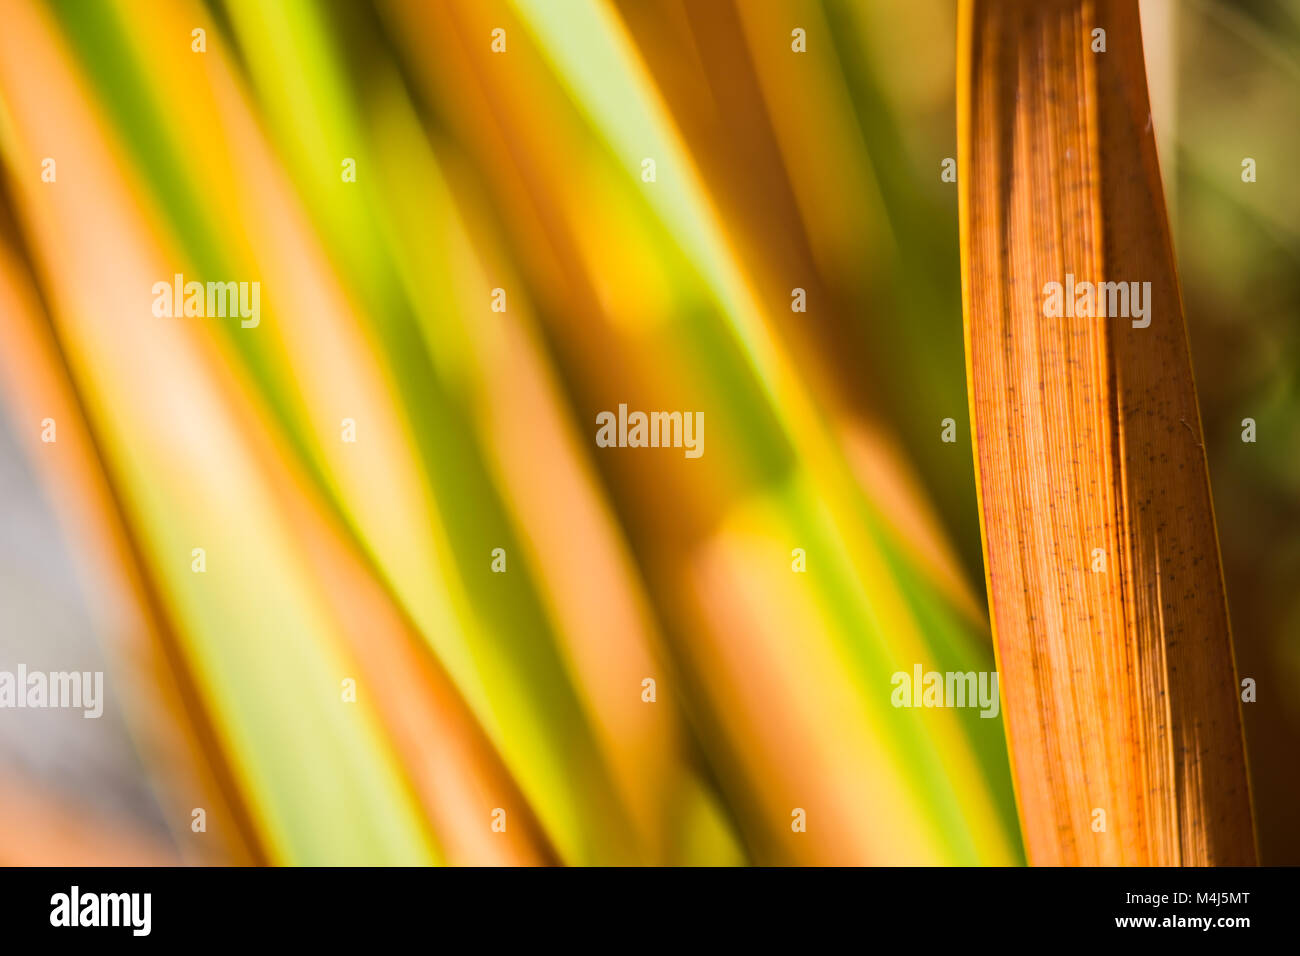 shape, lines and texture of a leaf on an unfocused background in autumn - Stock Image